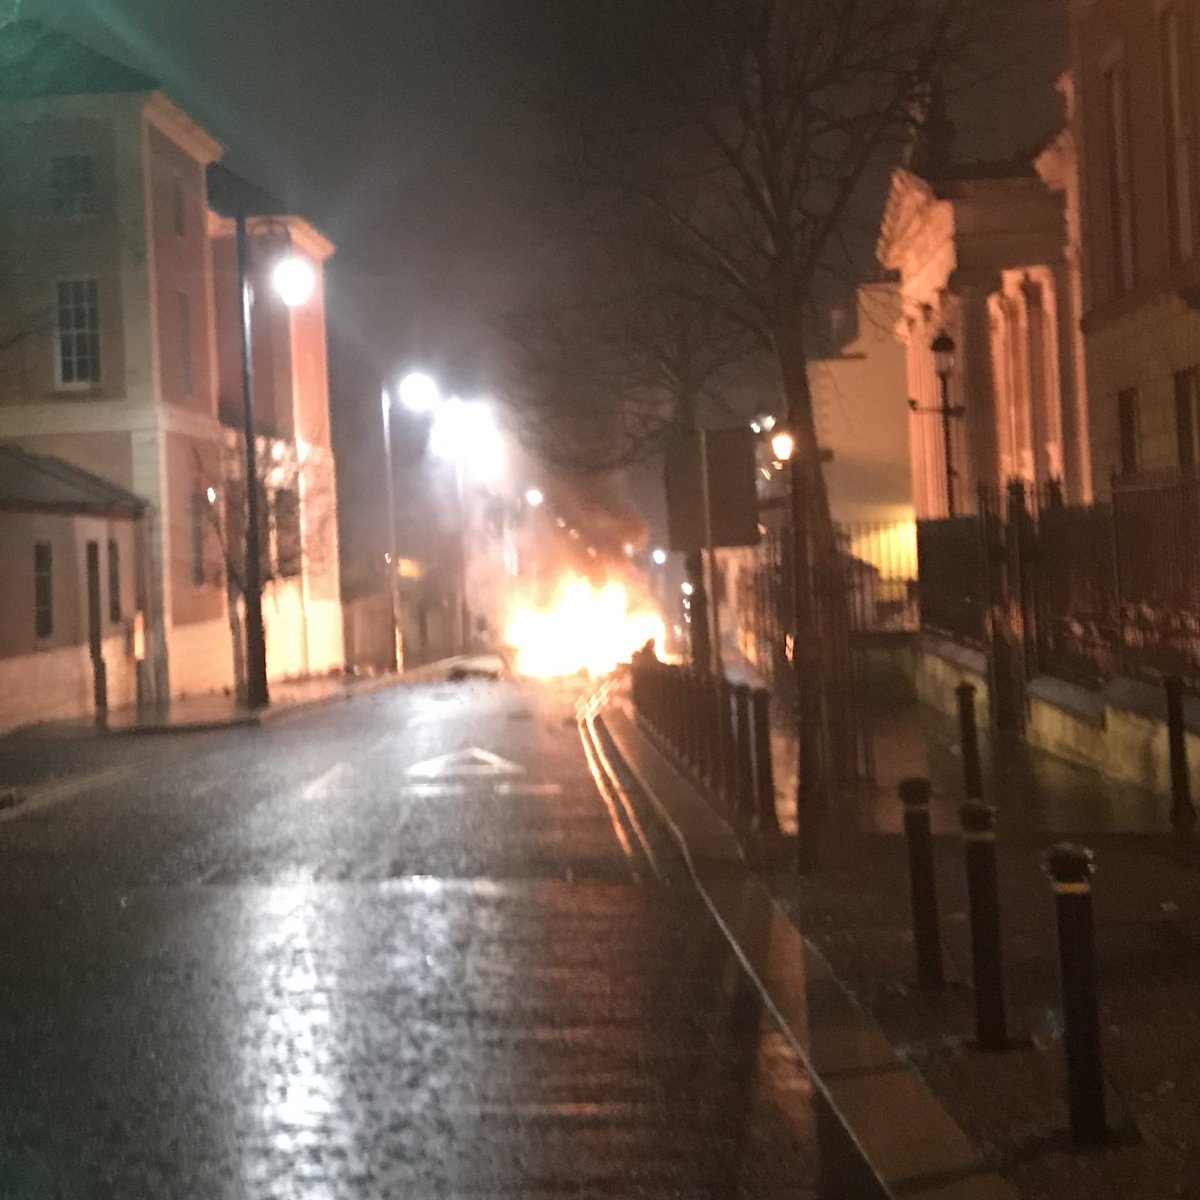 Four men arrested over Londonderry vehicle blast in Northern Ireland